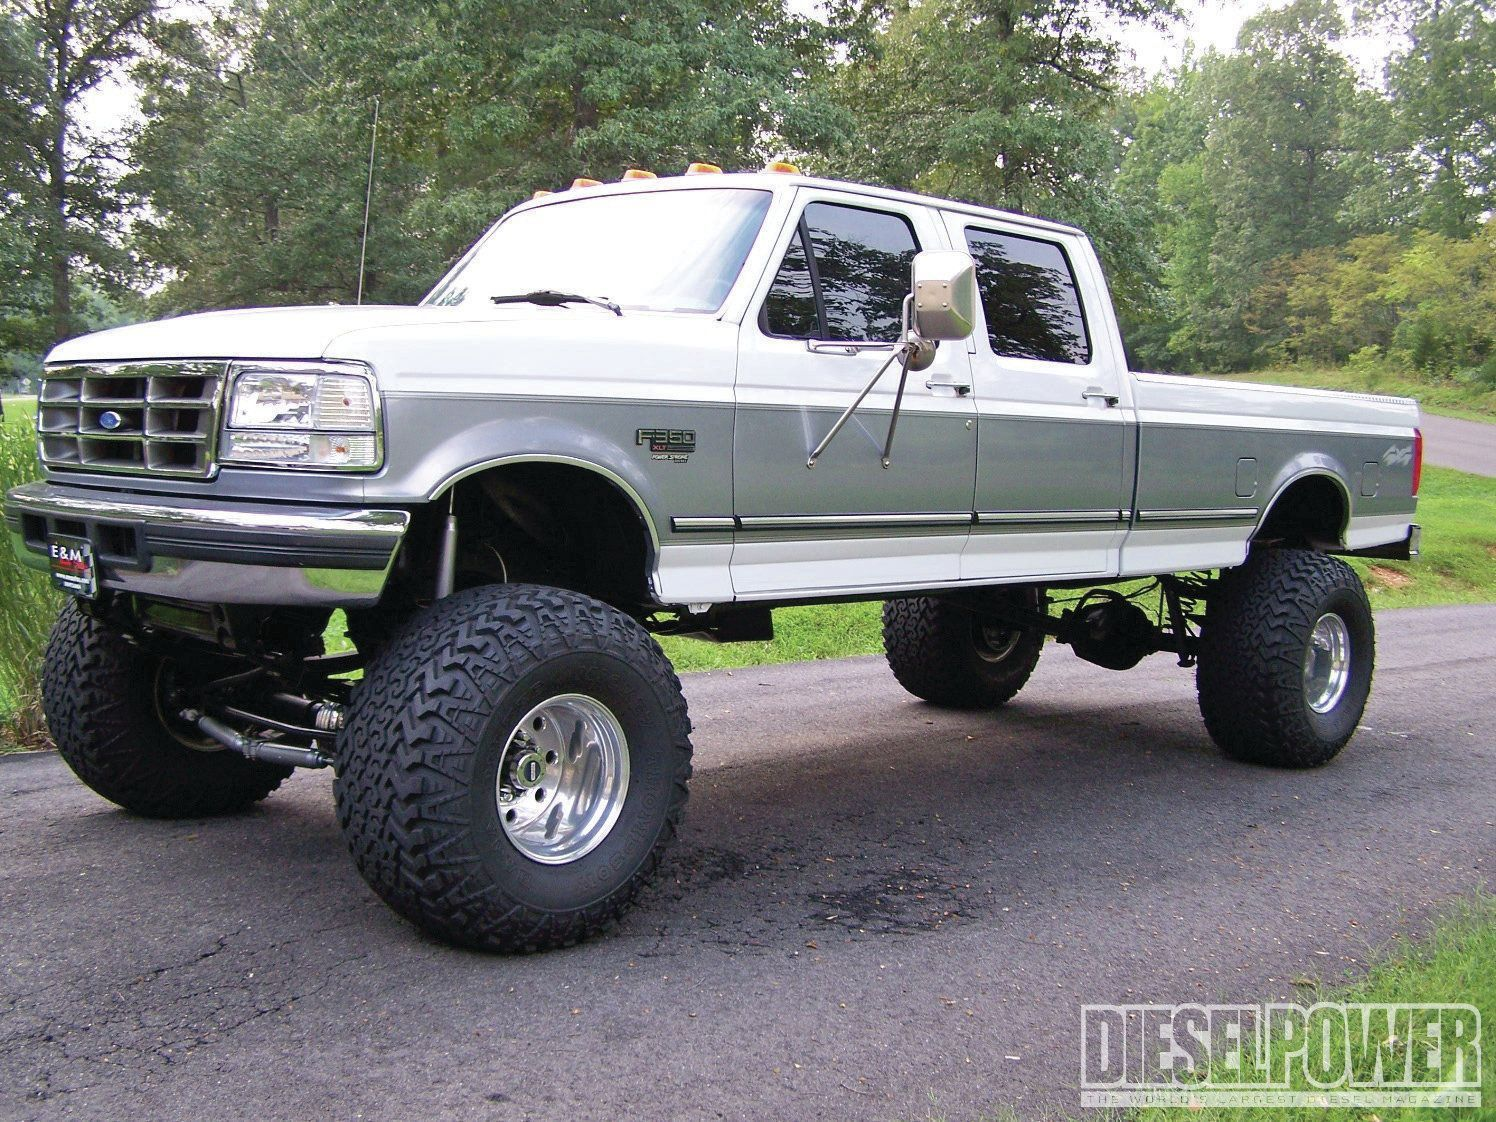 Ford Excursion 7 3 Diesel For Sale Craigslist The love for the road and for travel has always been a huge thing for people all over the world. ford excursion 7 3 diesel for sale